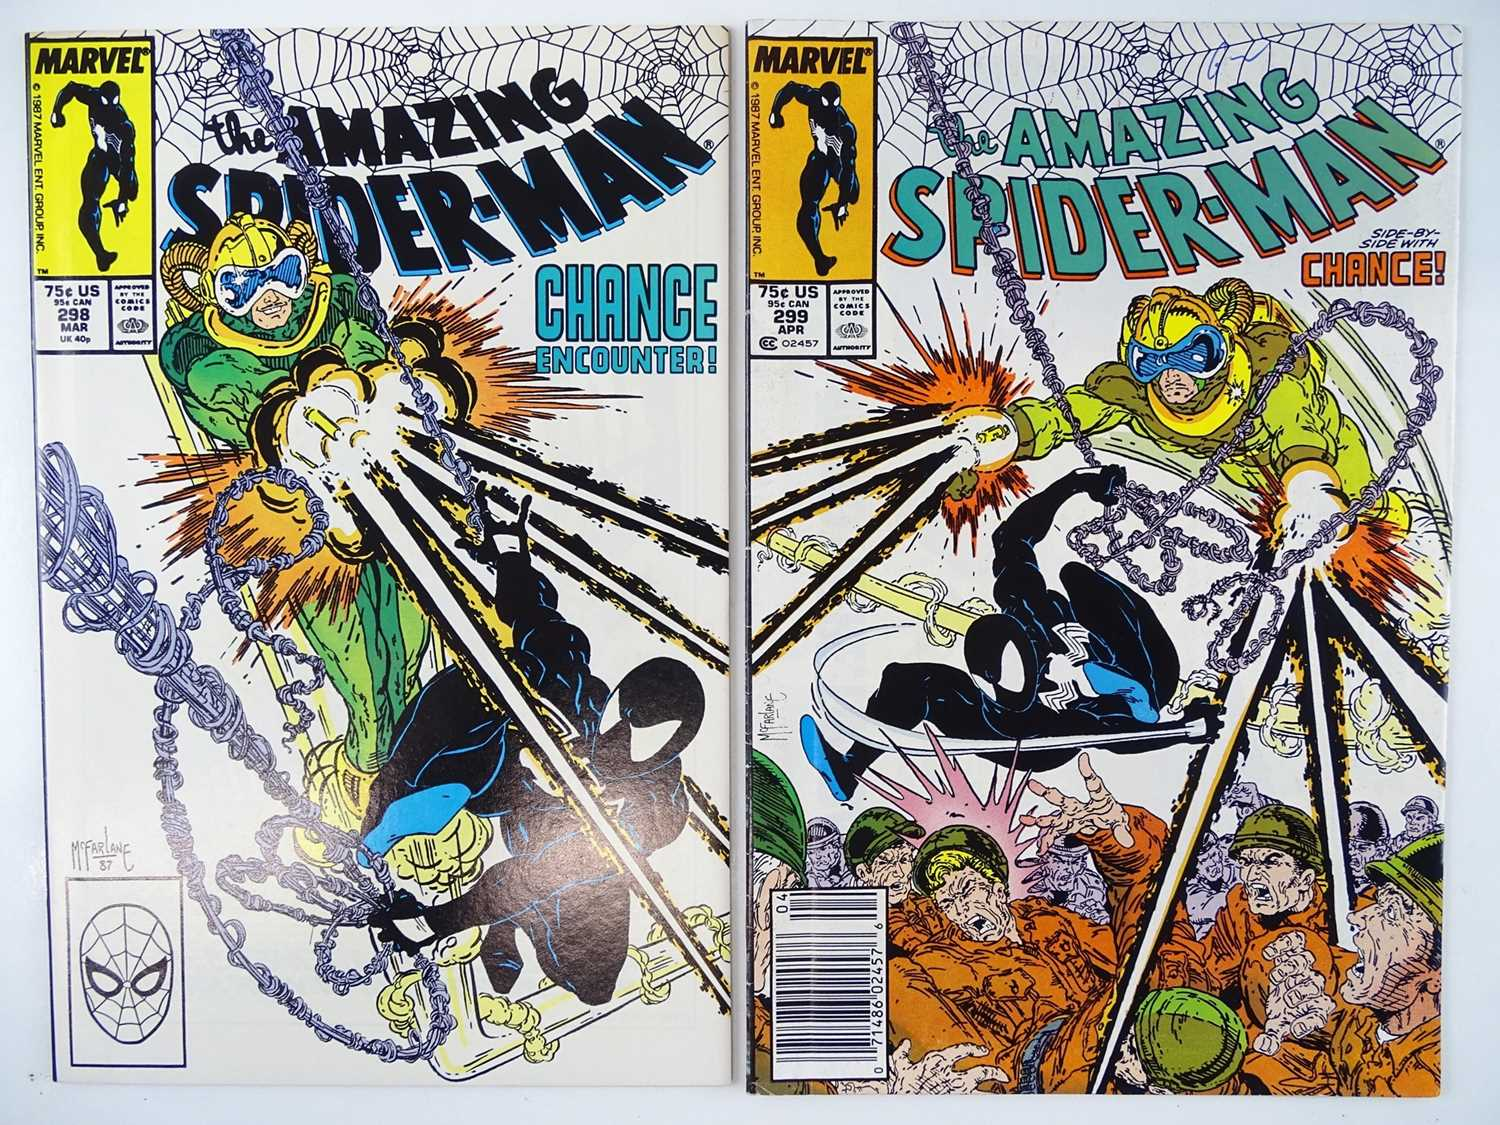 Lot 594 - AMAZING SPIDER-MAN #298 & 299 - (2 in Lot) -...